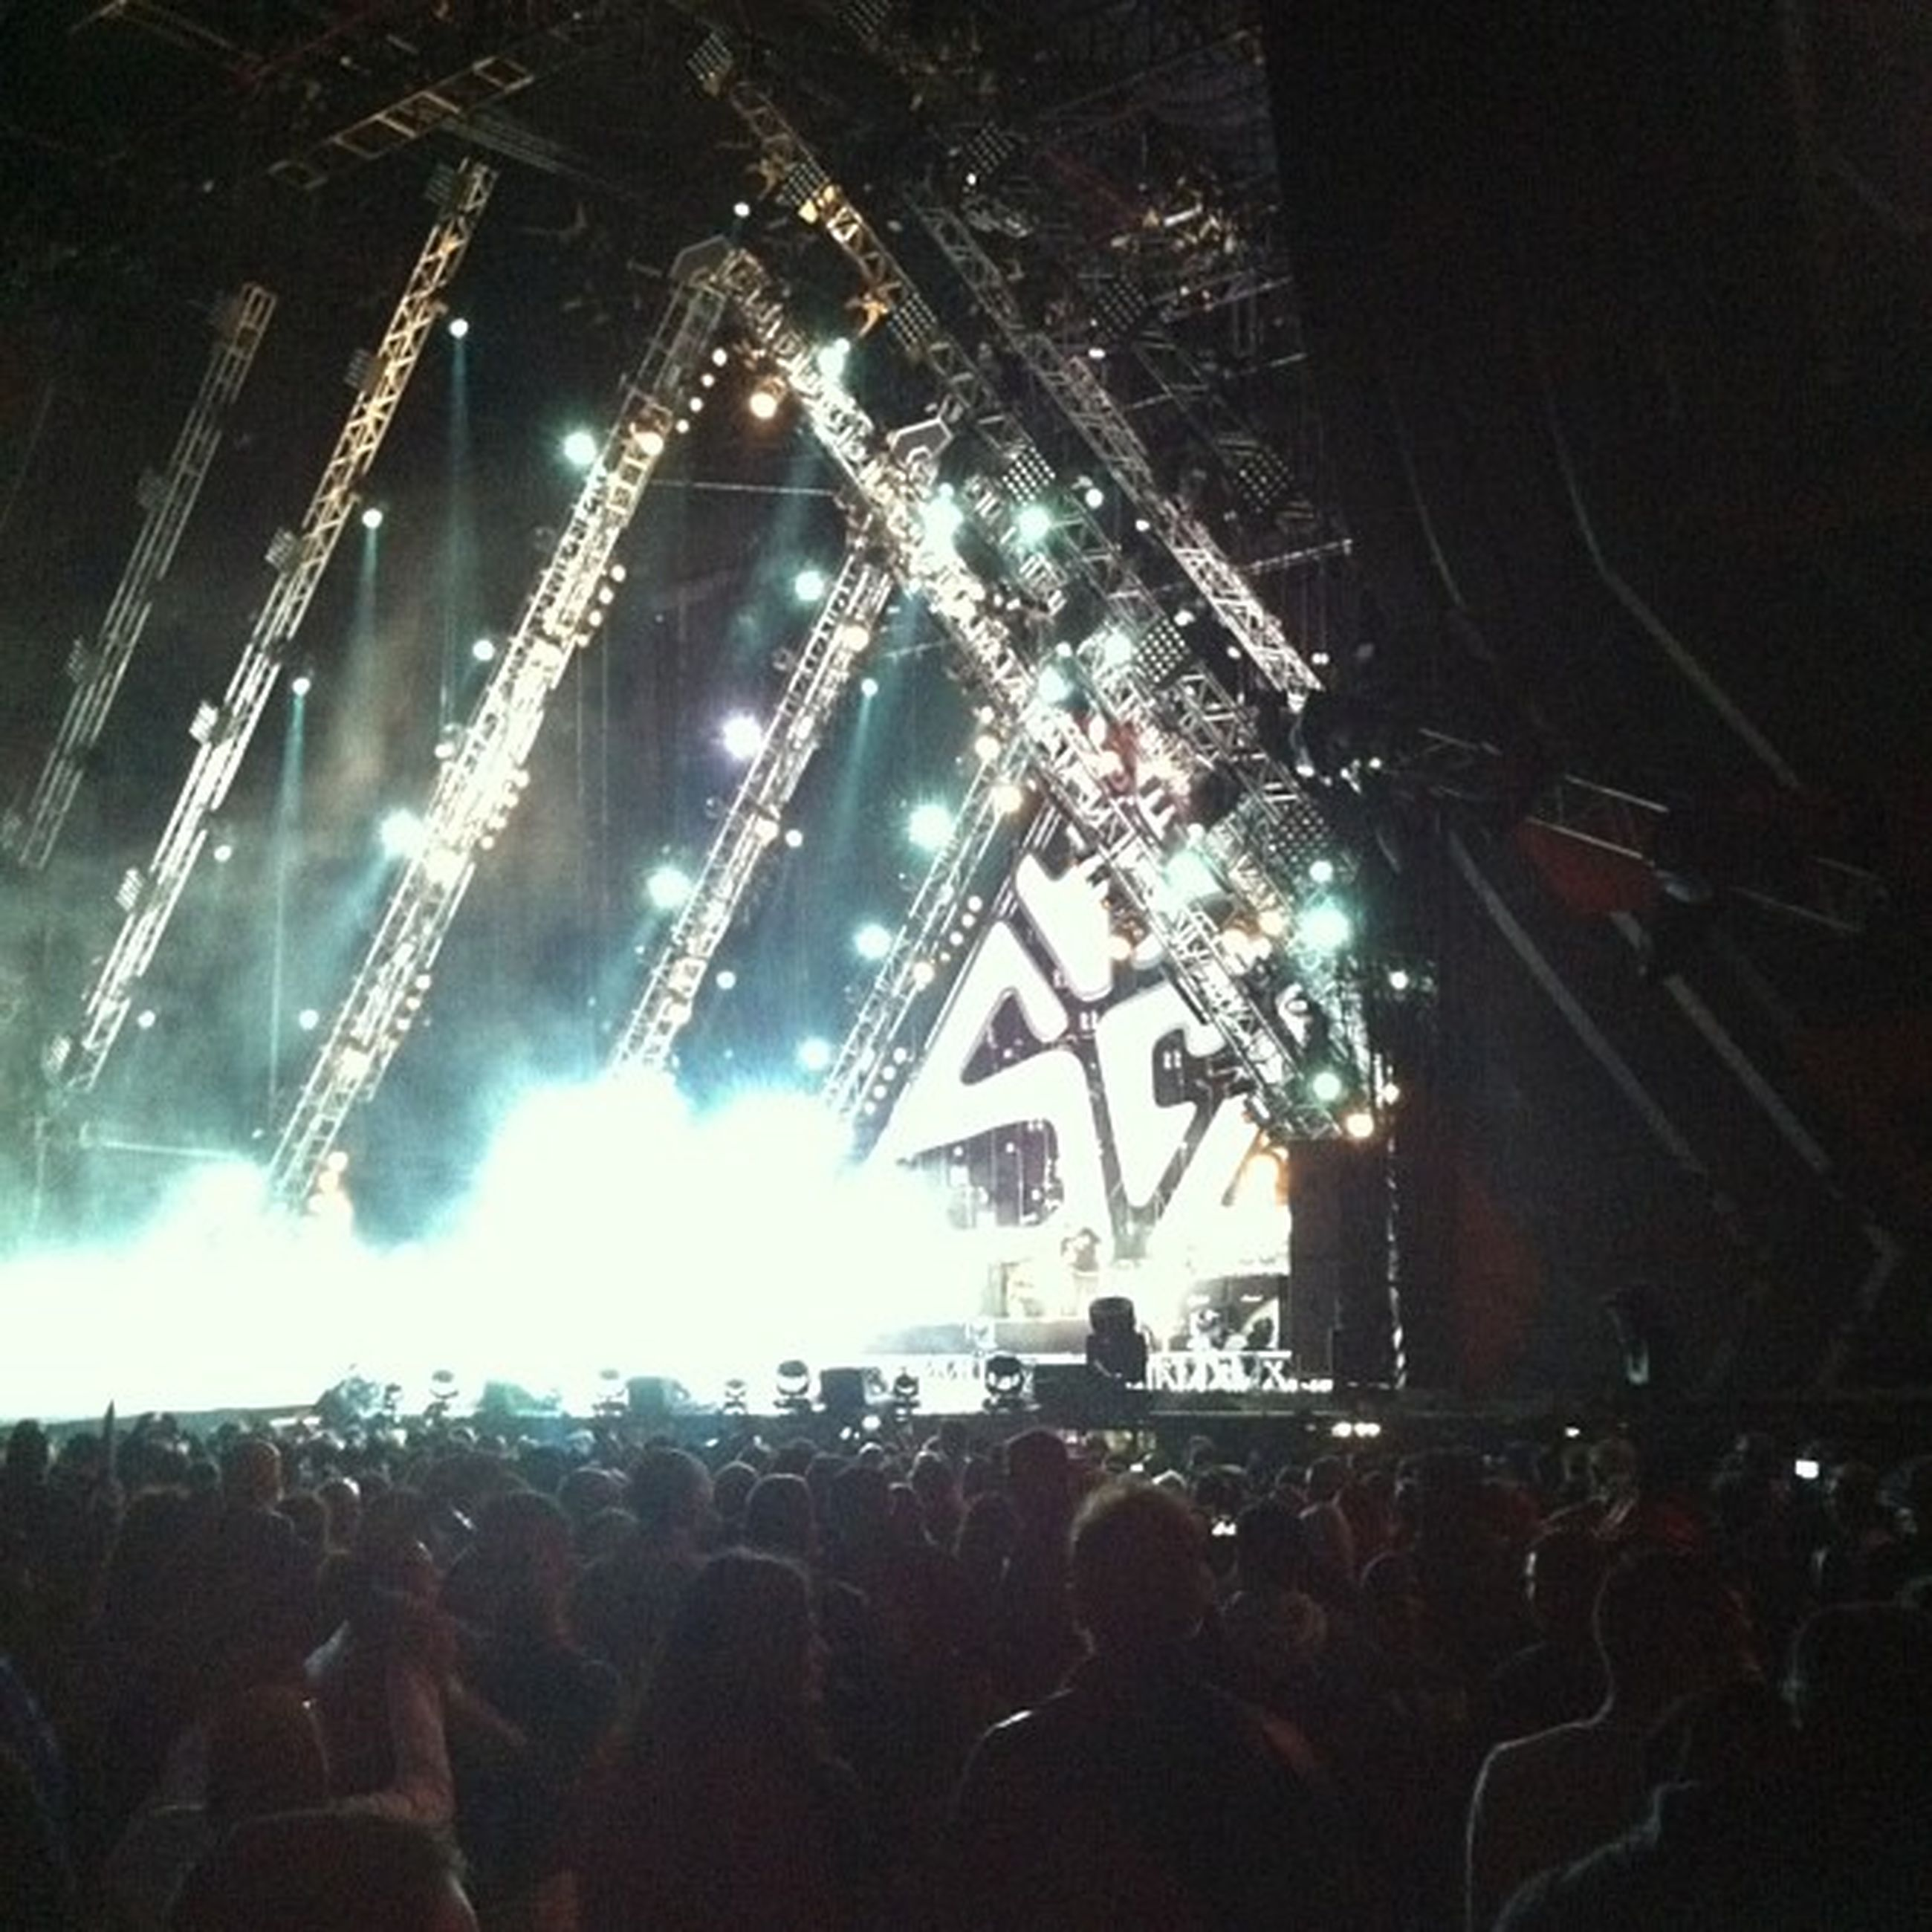 large group of people, illuminated, crowd, arts culture and entertainment, night, lifestyles, music, person, enjoyment, leisure activity, men, event, nightlife, performance, music festival, fun, stage - performance space, popular music concert